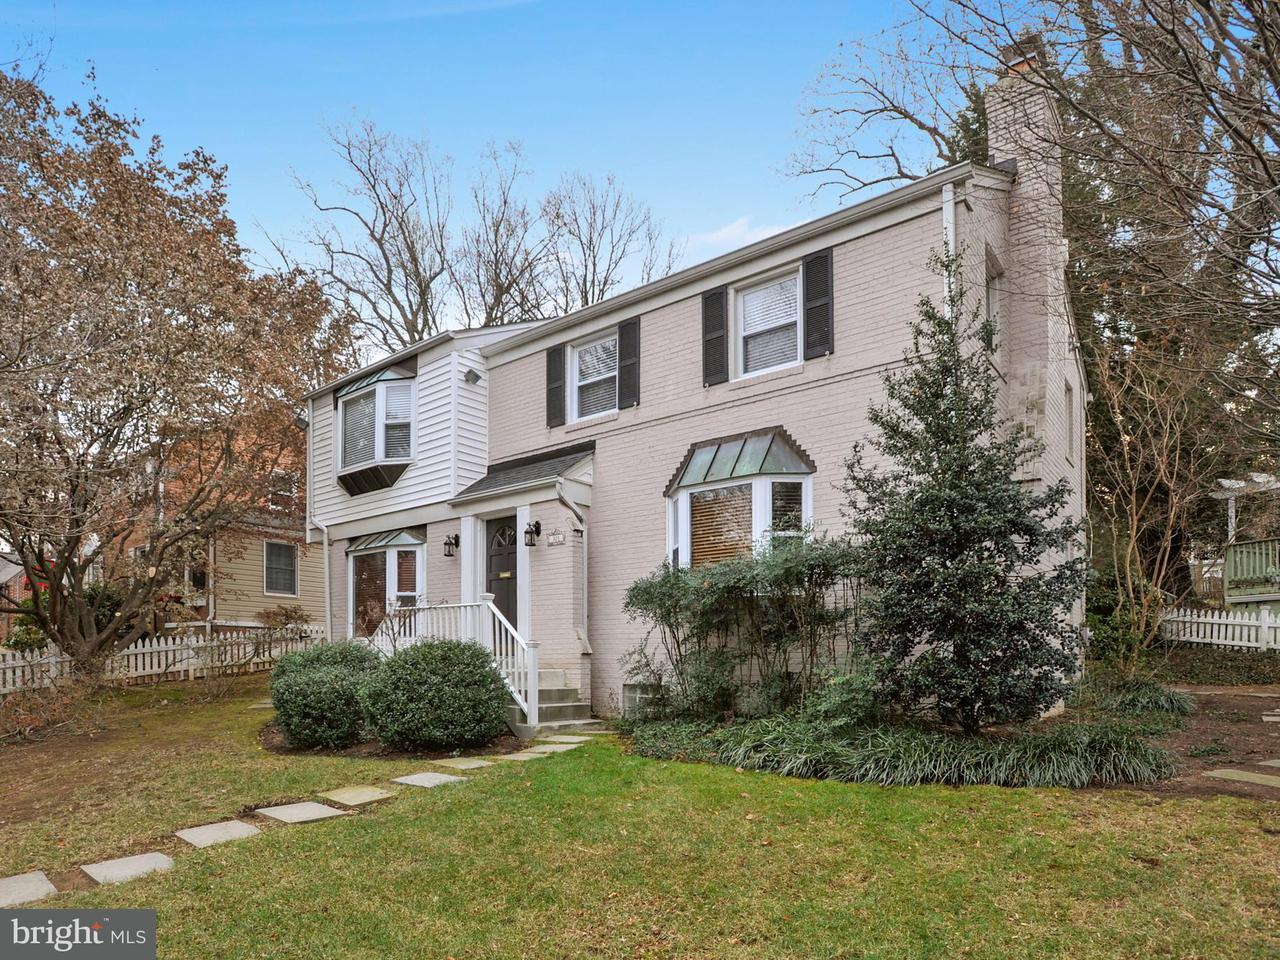 Single Family Home for Sale at 301 LEXINGTON Drive 301 LEXINGTON Drive Silver Spring, Maryland 20901 United States